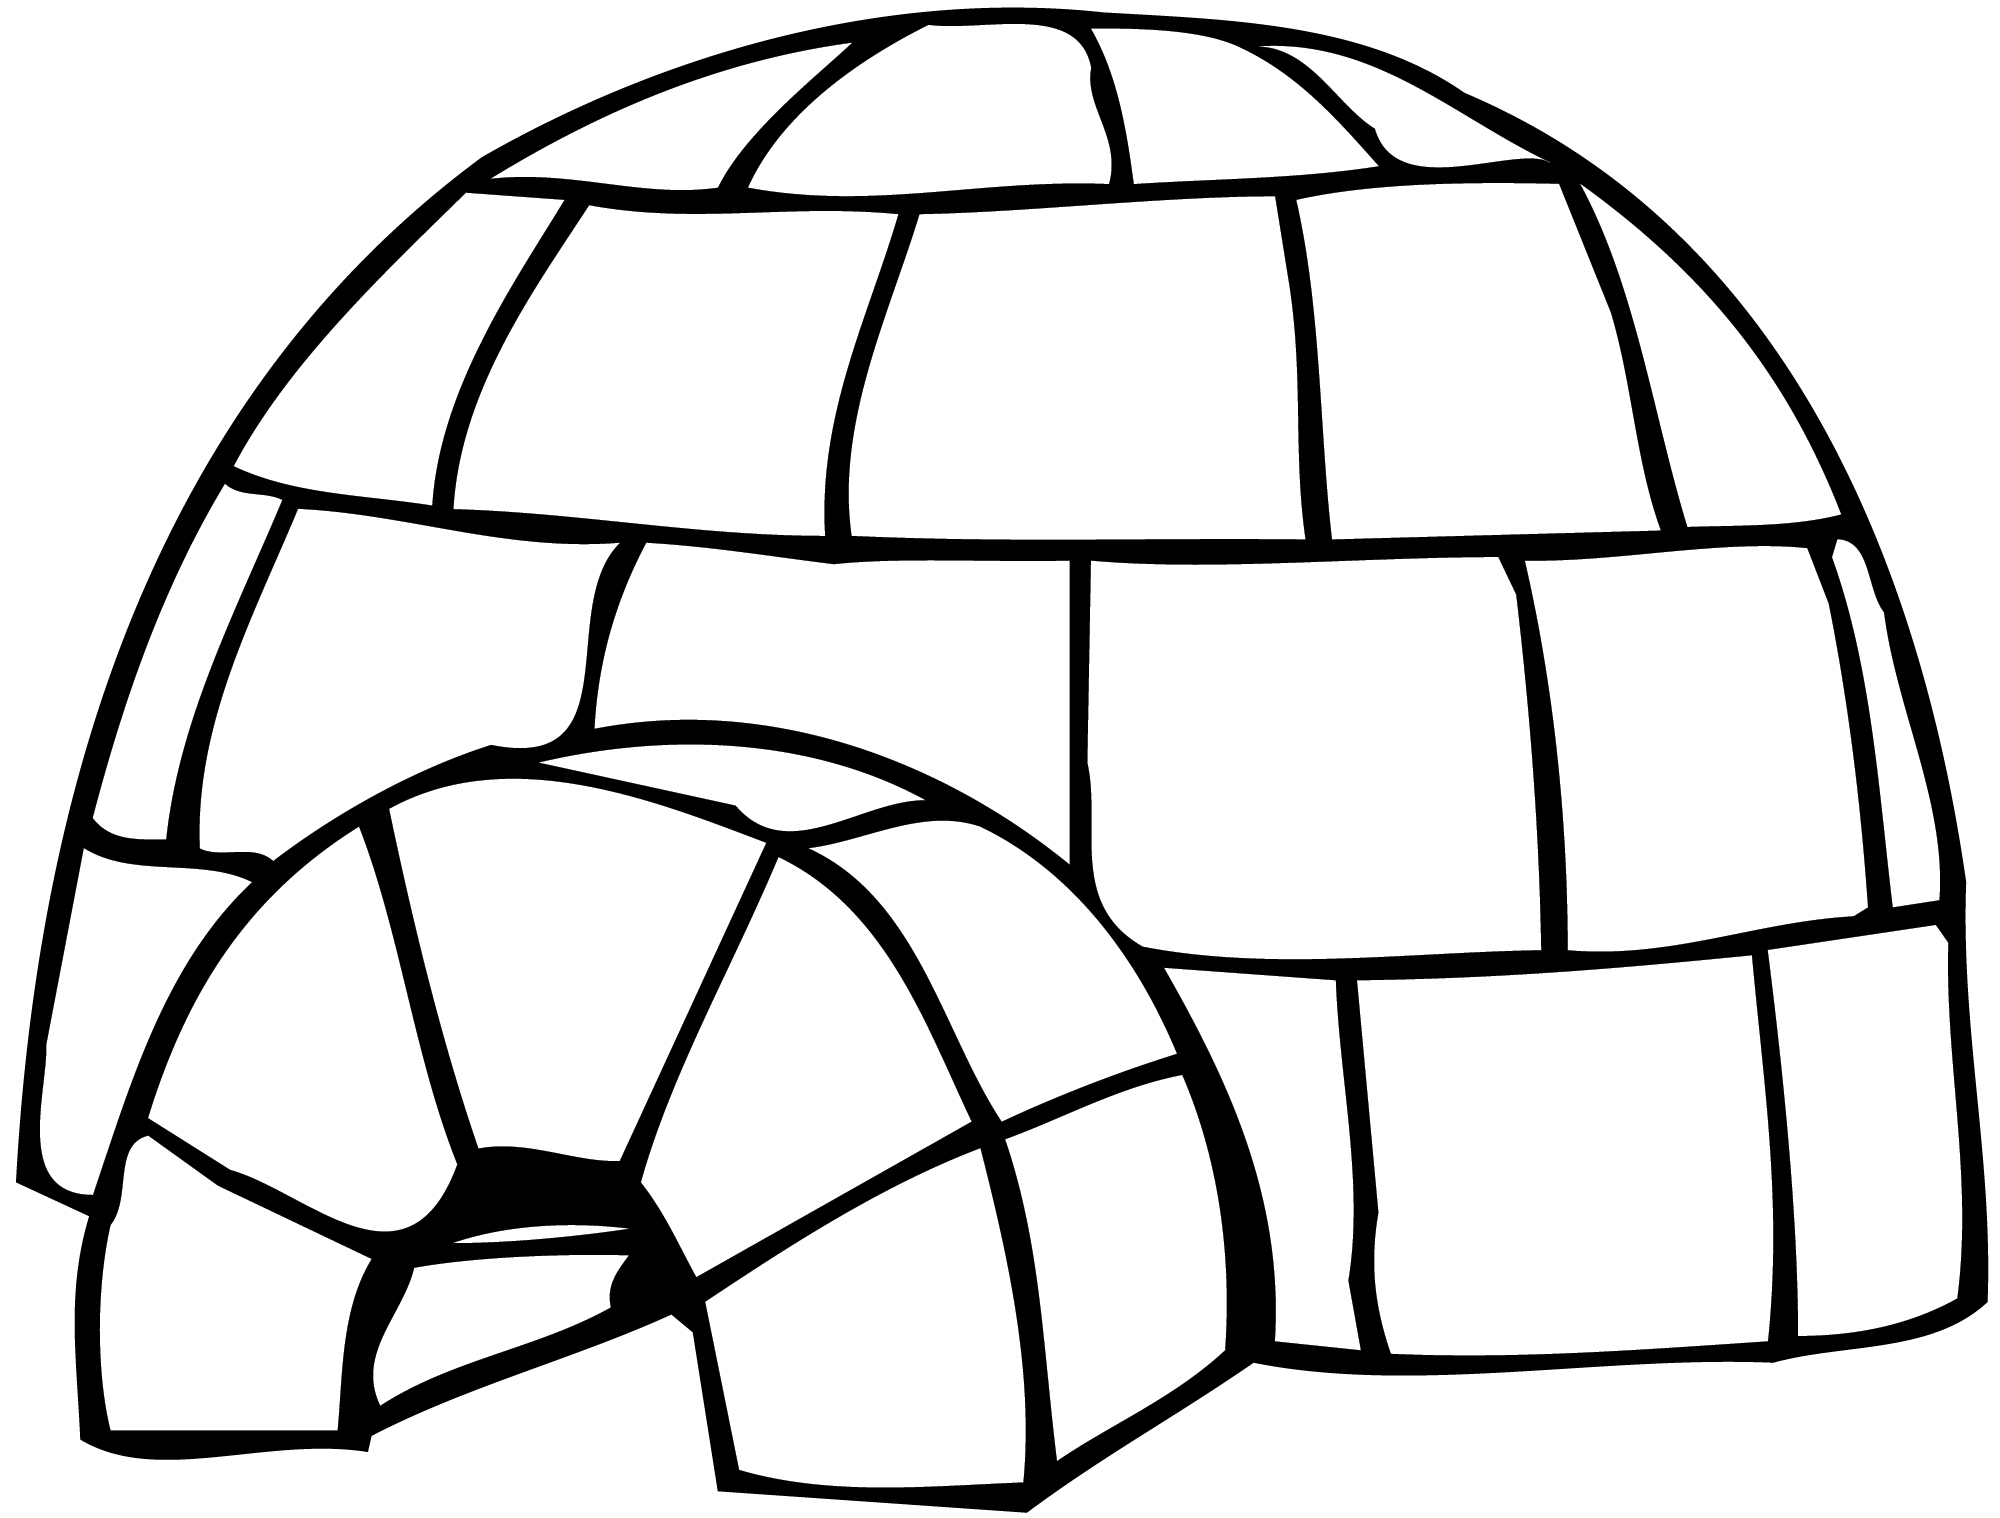 best igloo clipart 11283 clipartion com cliparts free download for powerpoint cliparts free download